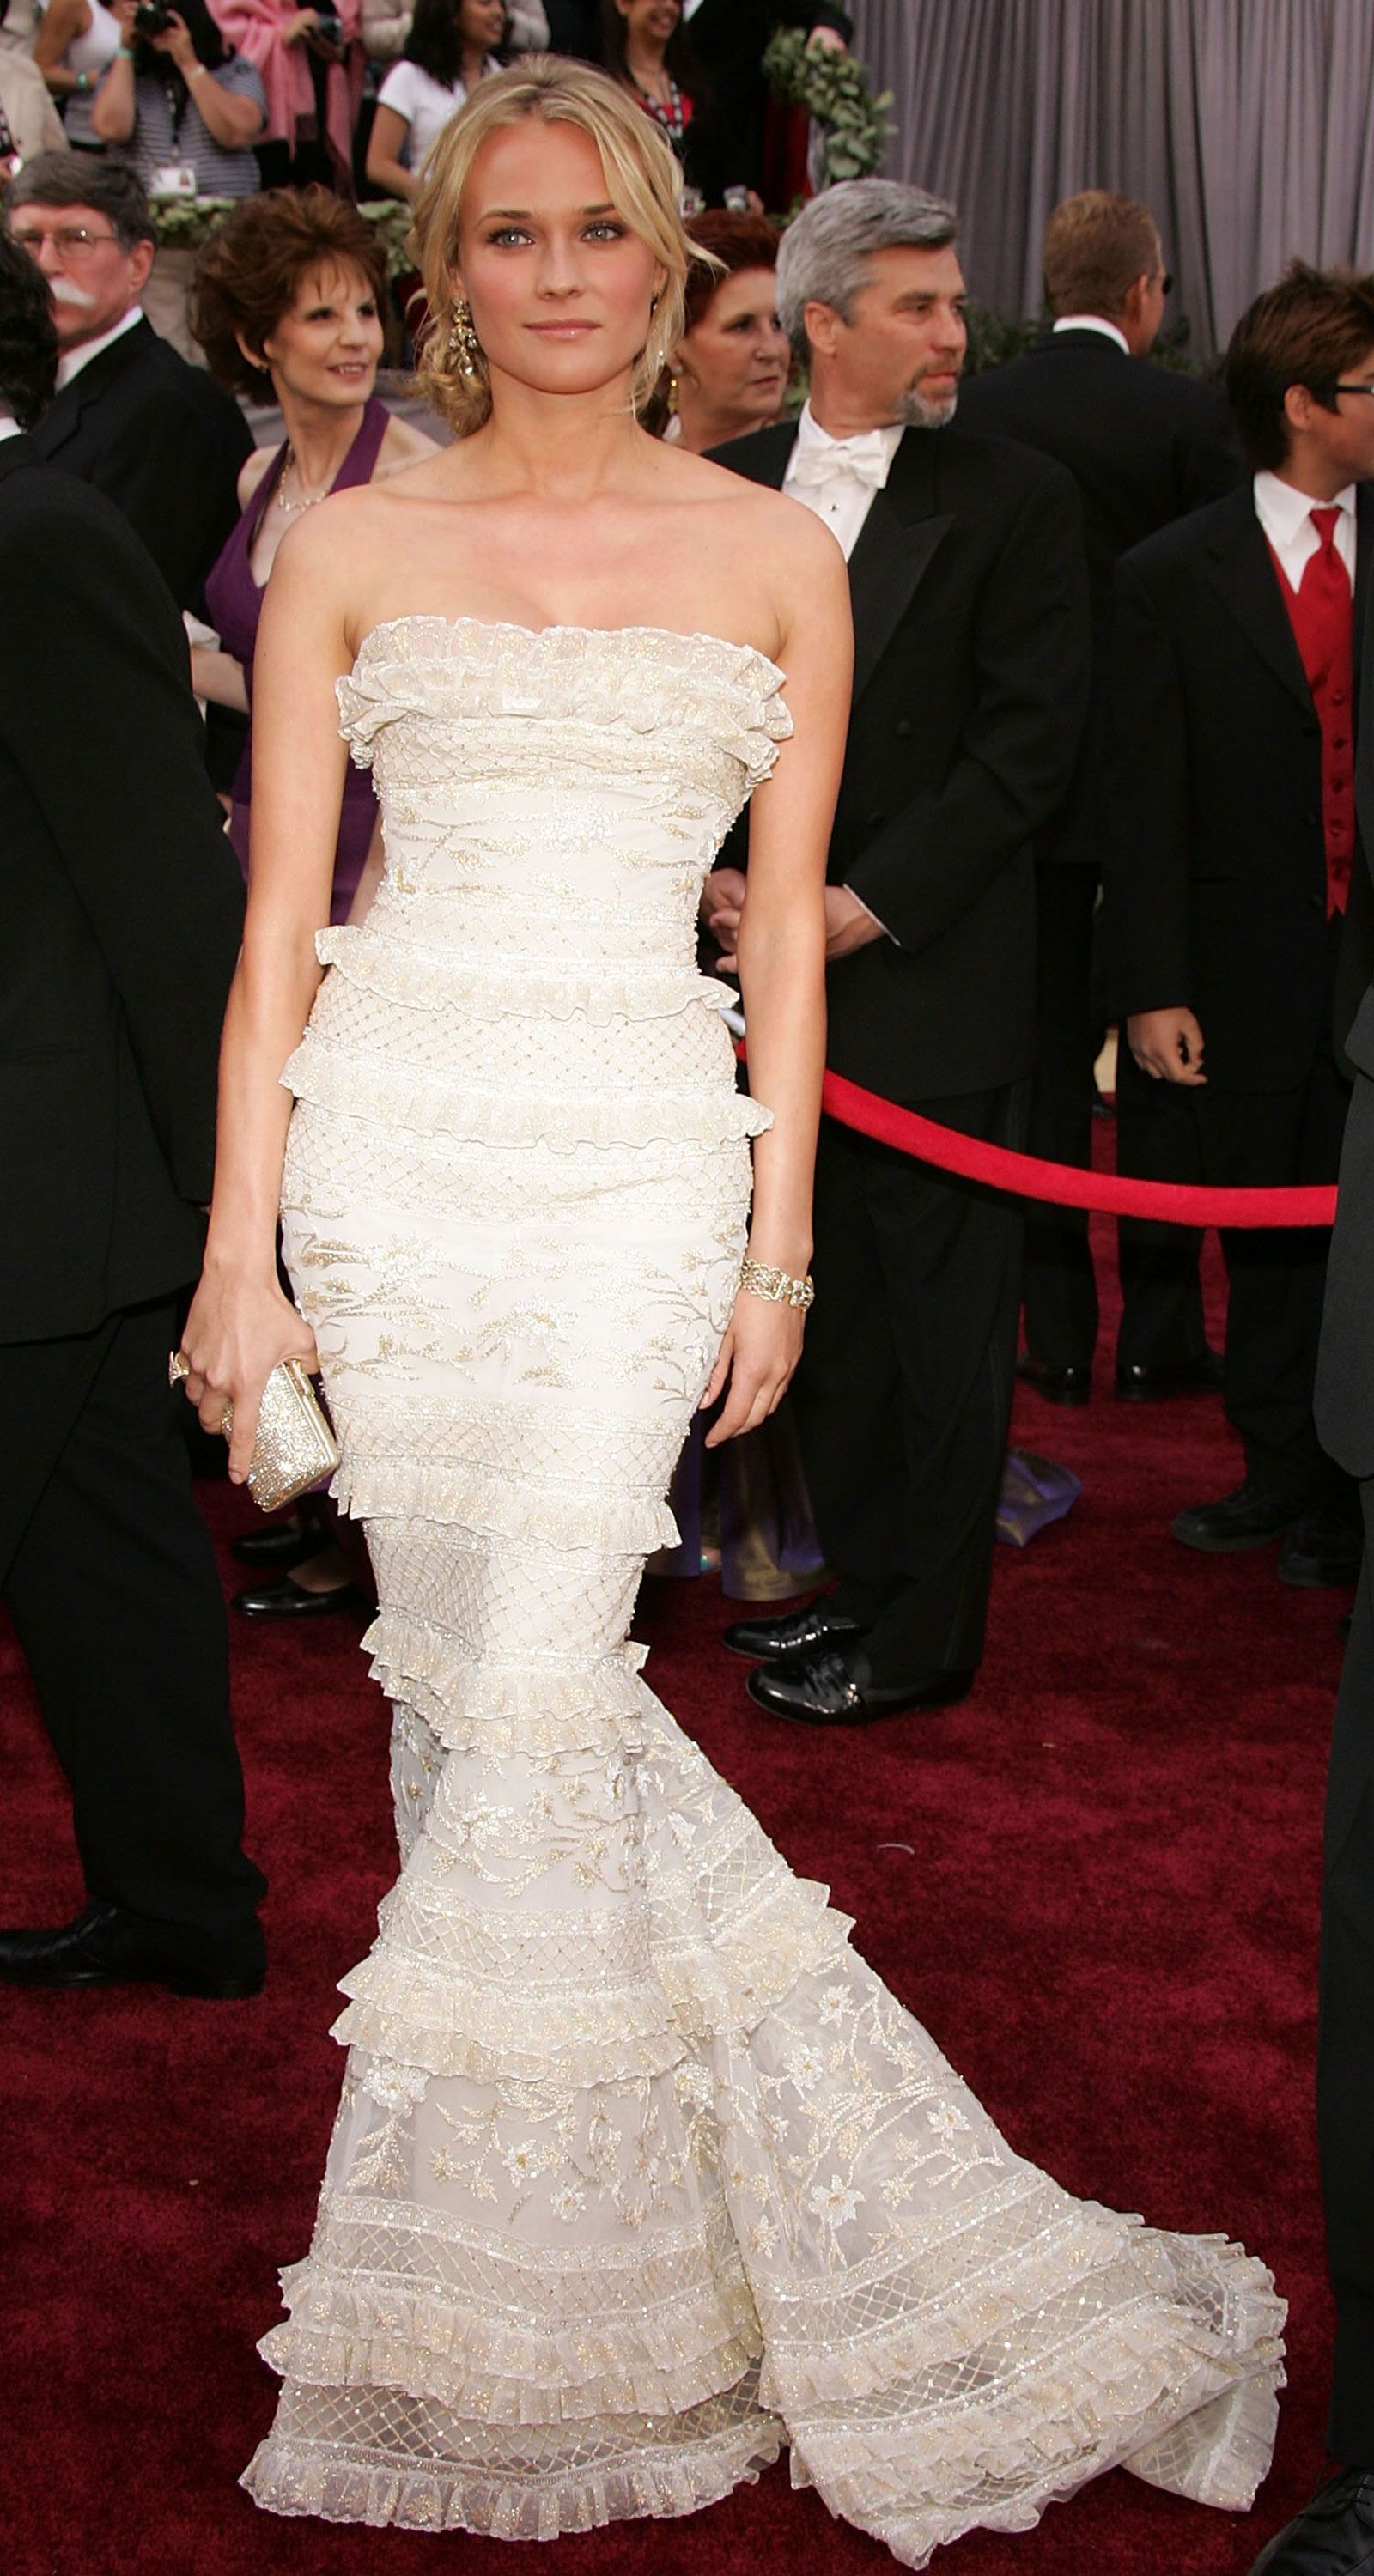 To acquire Wedding Strapless dresses with red picture trends